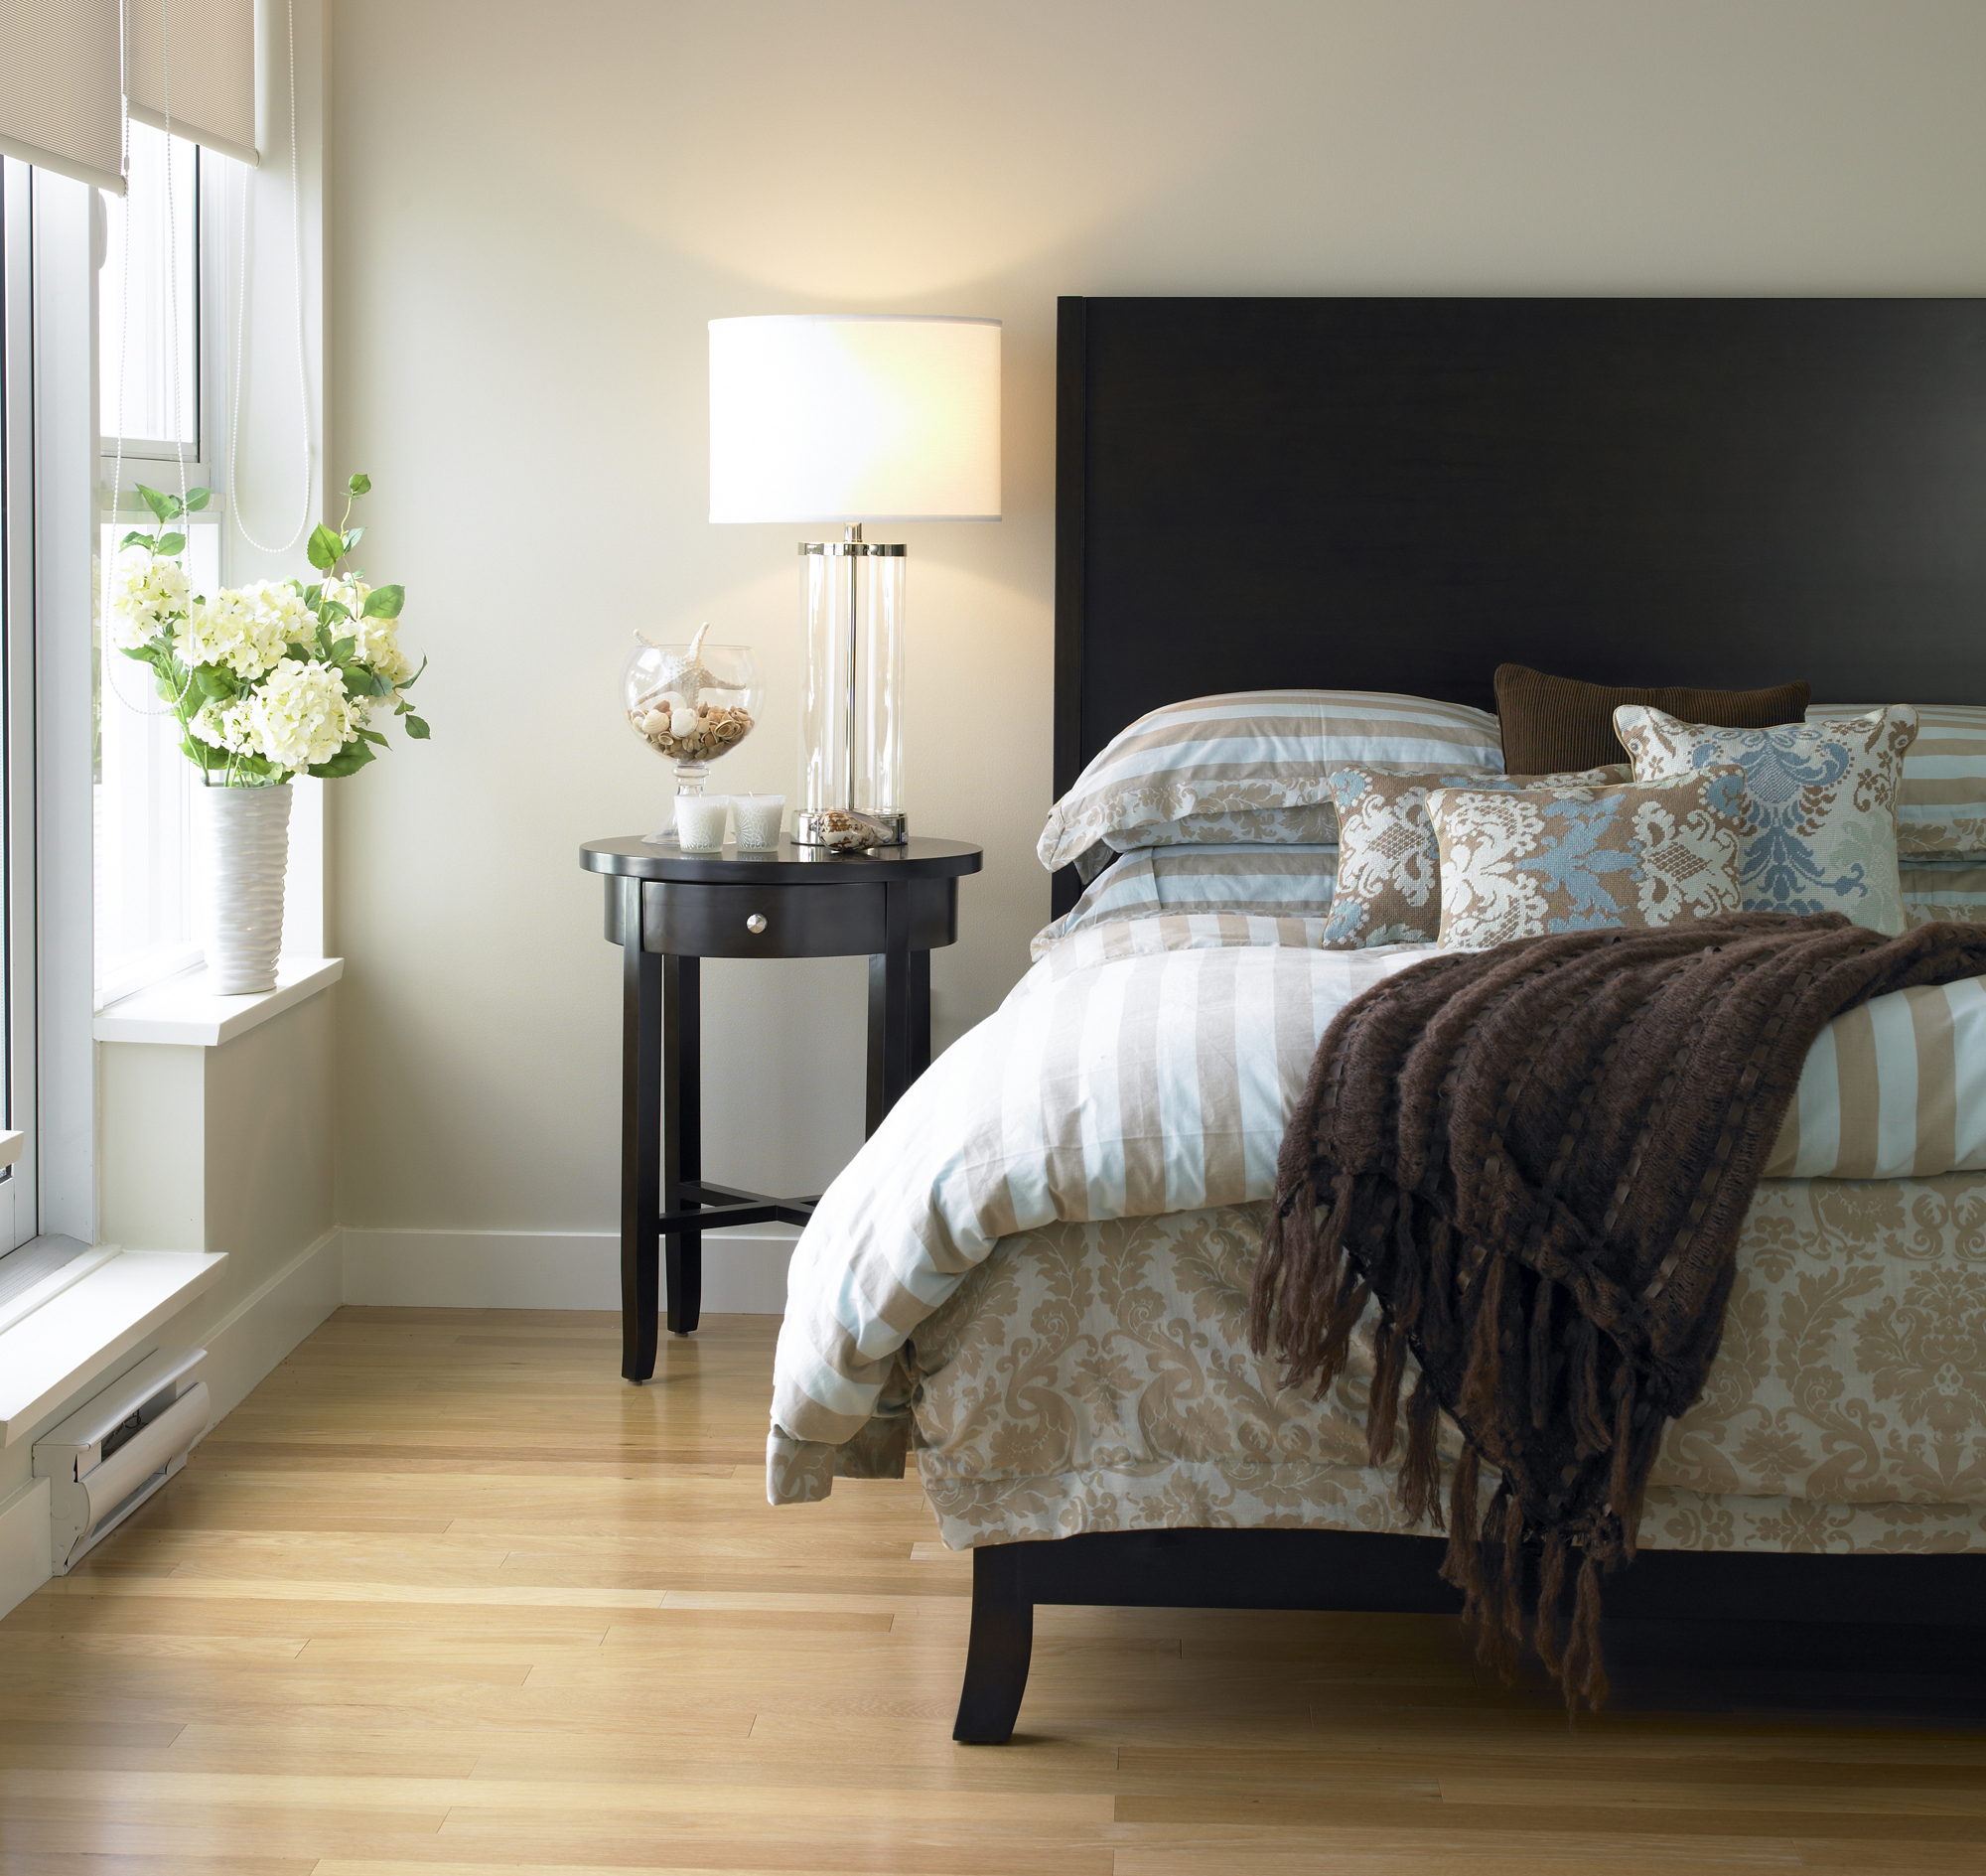 Clone of Bedroom with brown and blue bedding, bedside table, flowers